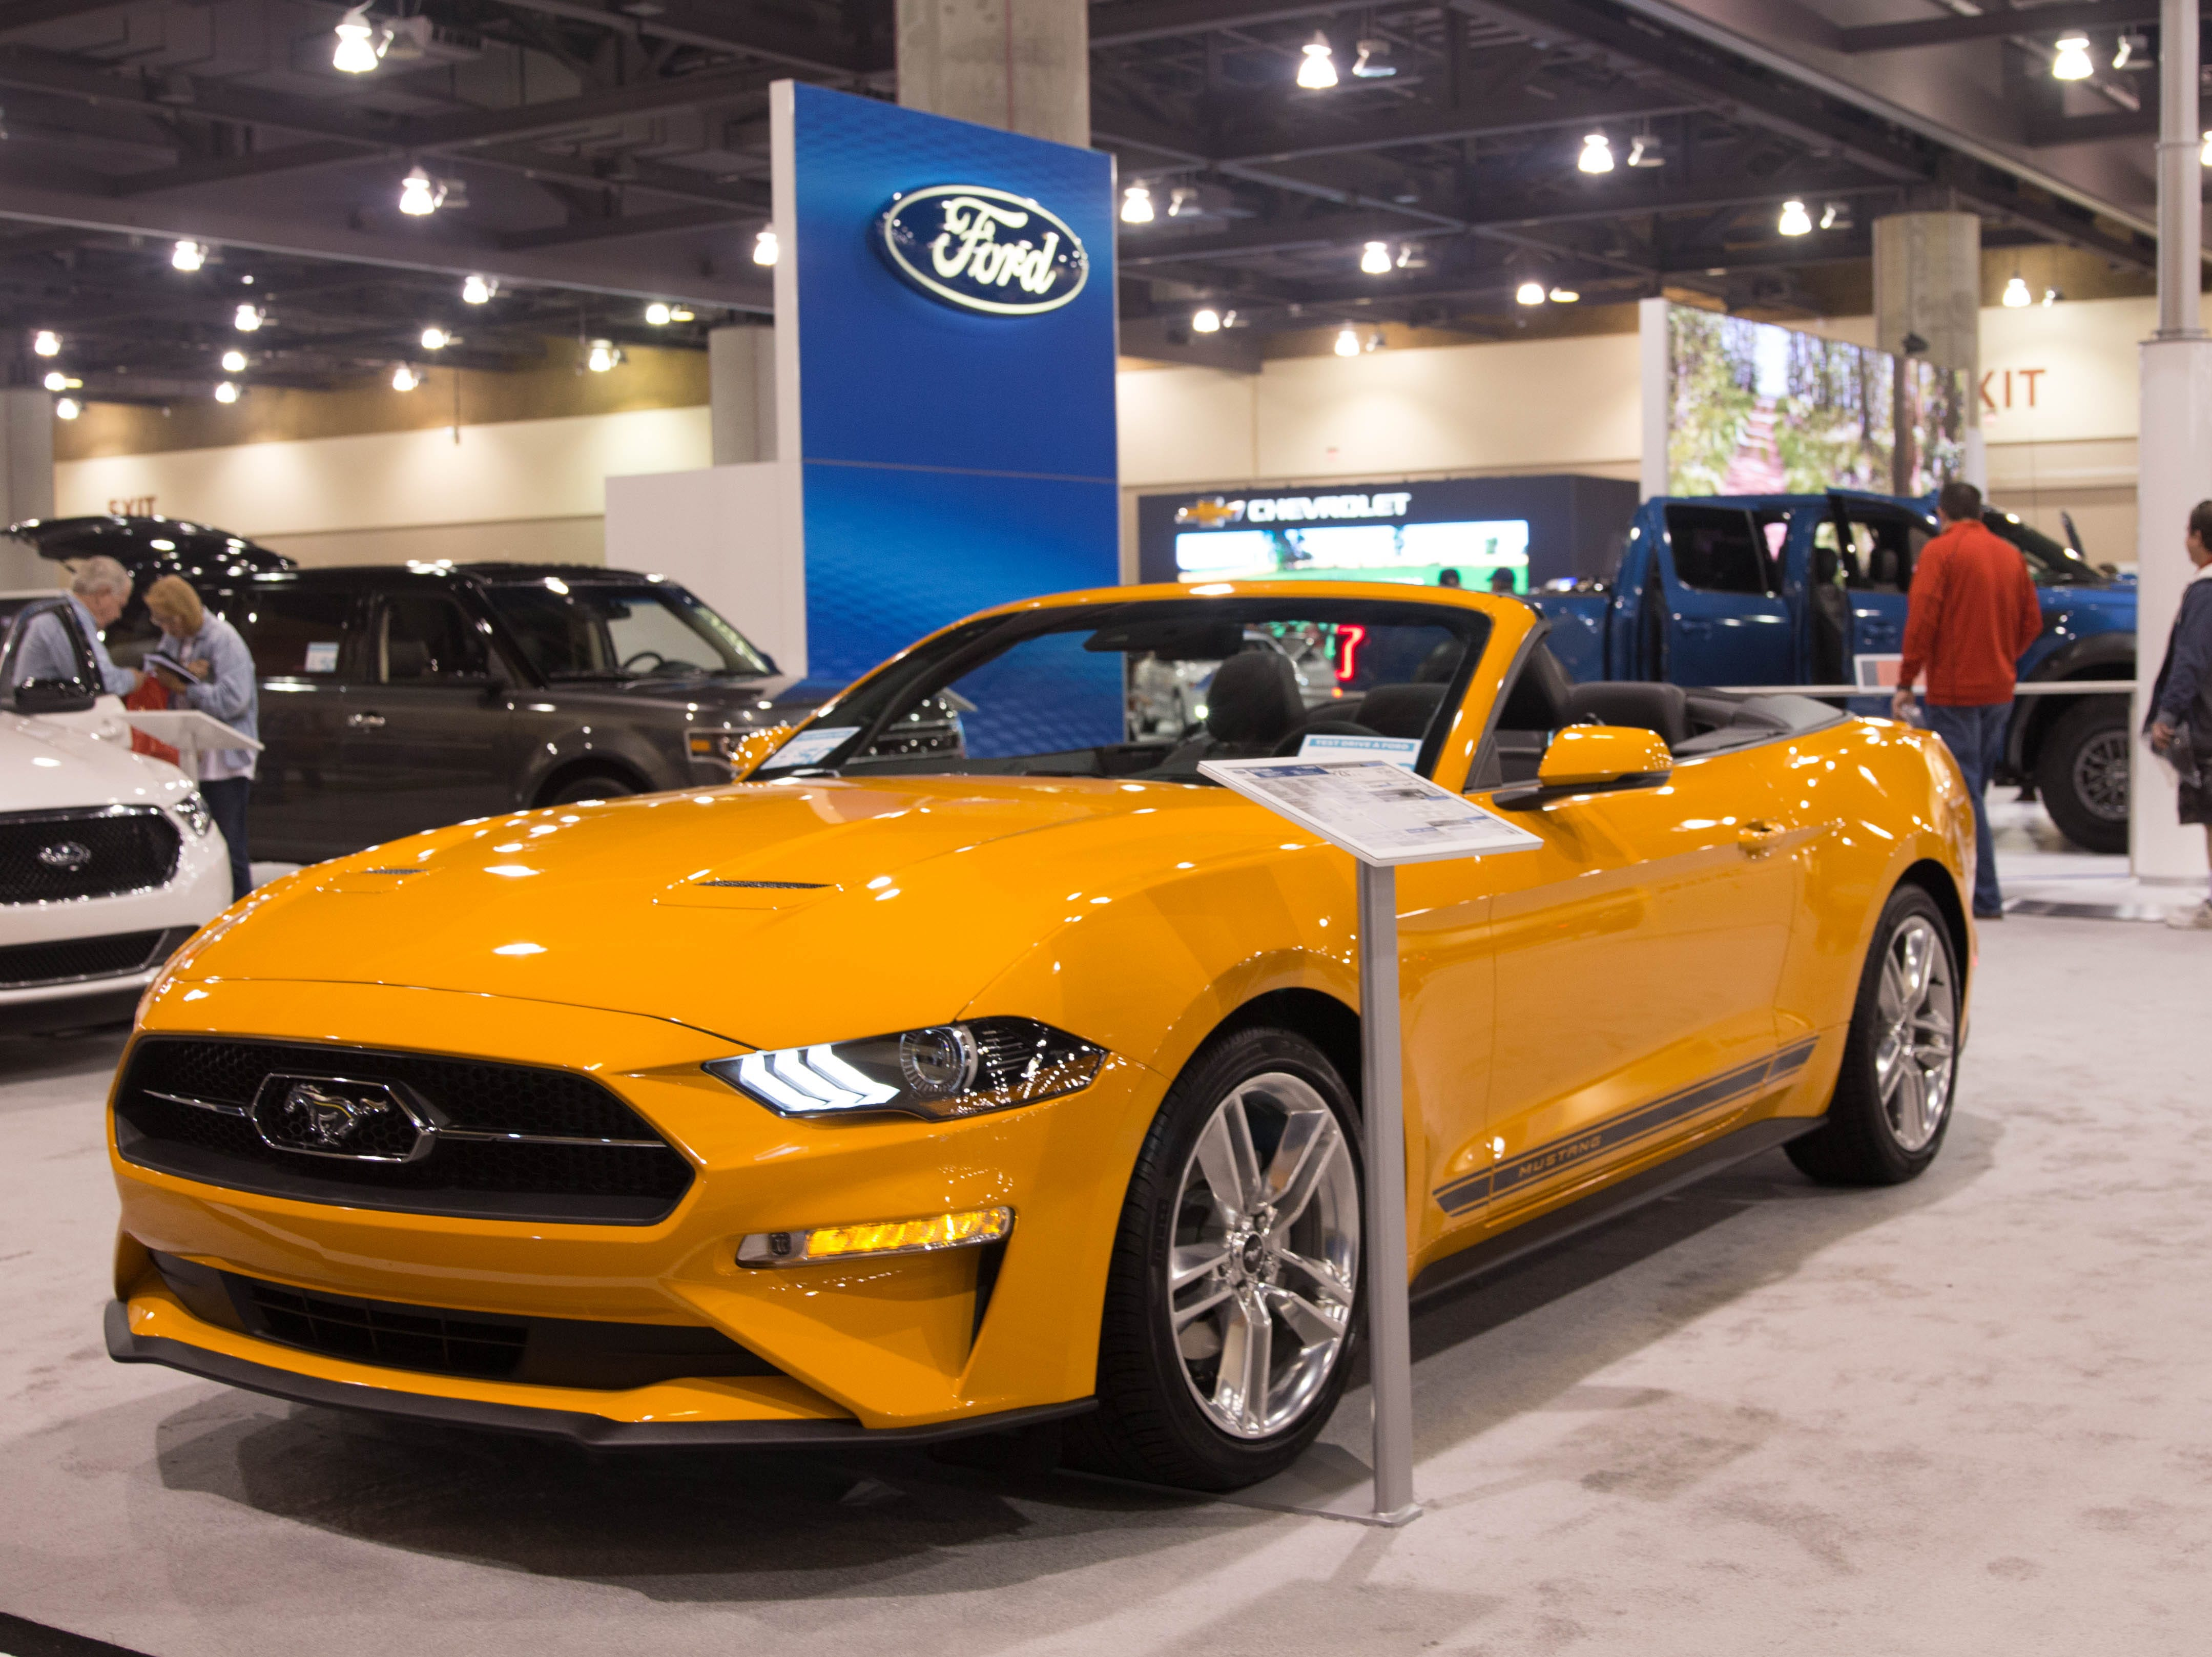 Vehicles like the 2019 Ford Mustang were available for visitors to check out at the auto show.